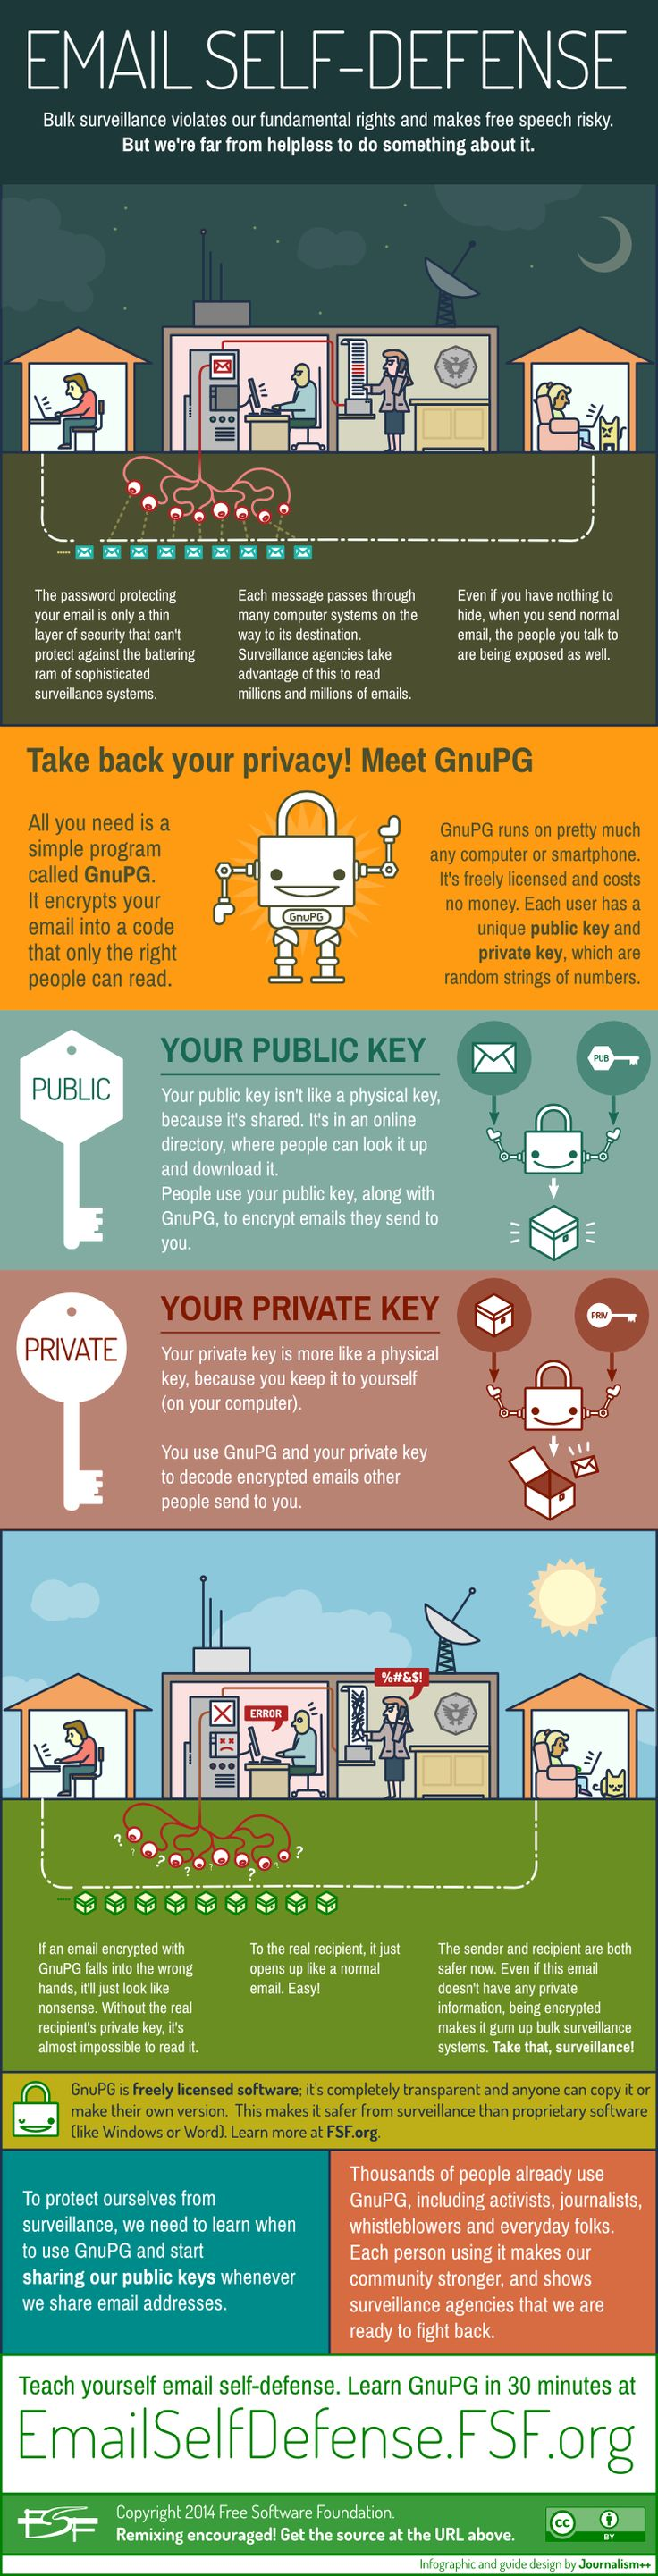 #emailSelfDefense View & share our infographic https://fsf.org/share?u=https://u.fsf.org/zc&t=How%20public-key%20encryption%20works.%20Infographic%20via%20%40fsf%20%23EmailSelfDefense